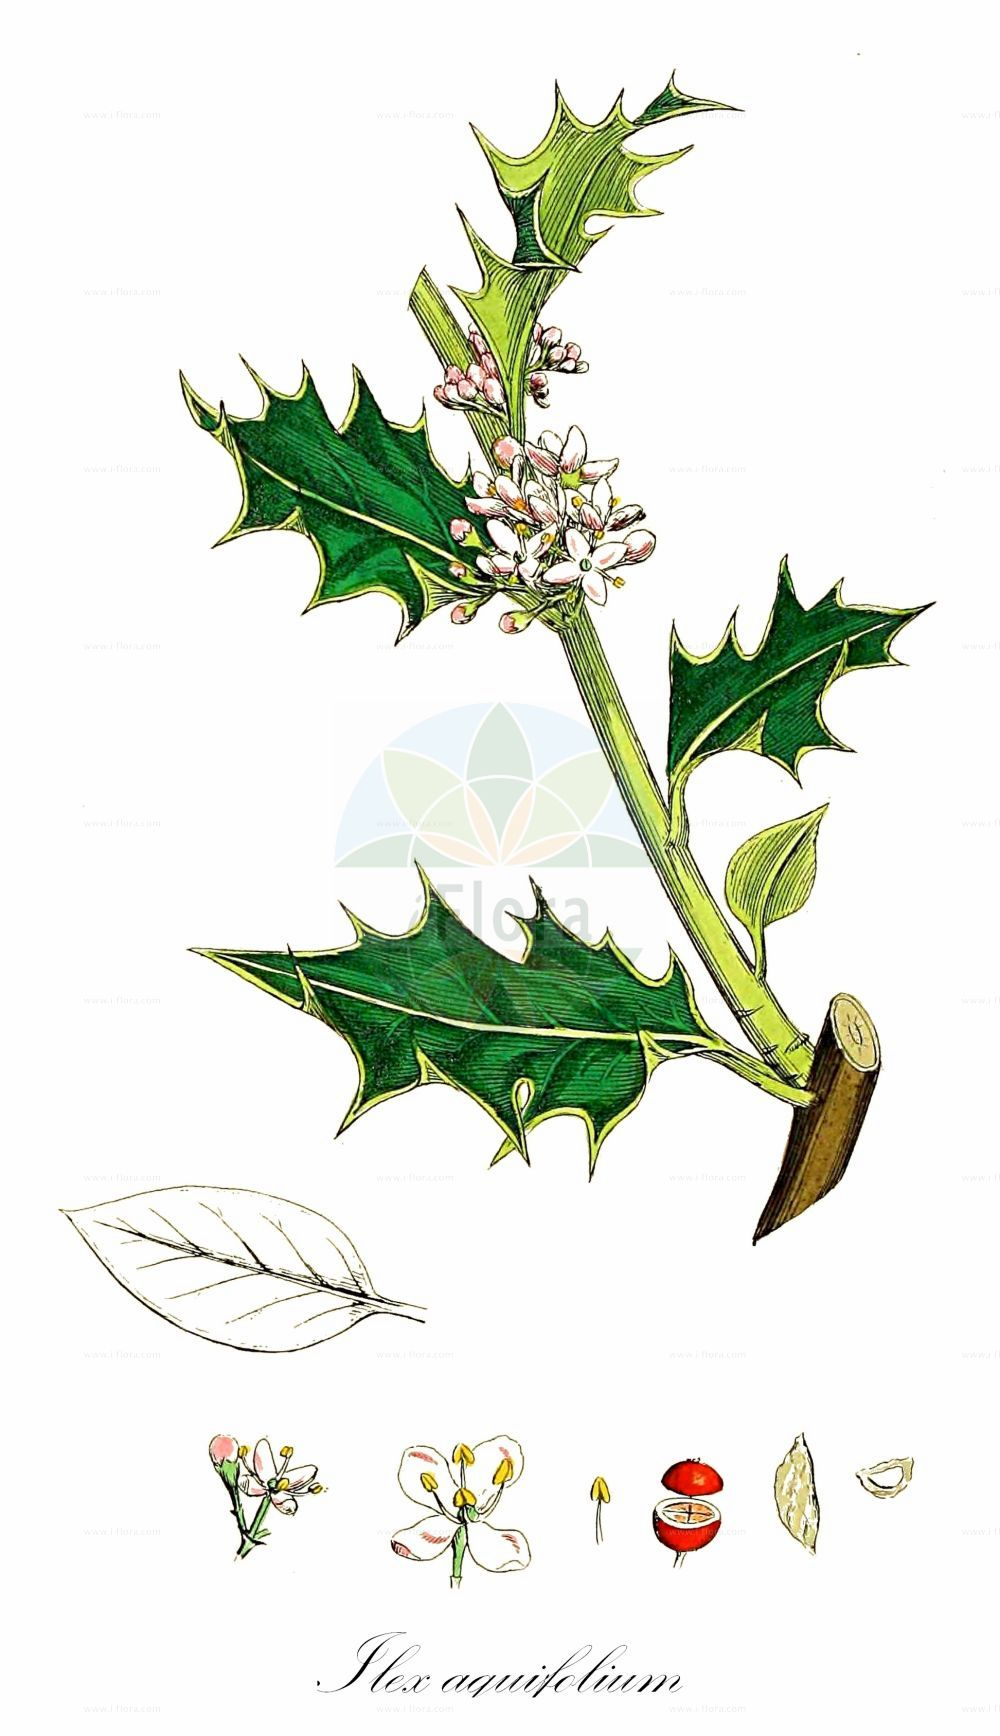 Historische Abbildung von Ilex aquifolium (Europaeische Stechpalme - Holly). Das Bild zeigt Blatt, Bluete, Frucht und Same. ---- Historical Drawing of Ilex aquifolium (Europaeische Stechpalme - Holly).The image is showing leaf, flower, fruit and seed.(Ilex aquifolium,Europaeische Stechpalme,Holly,Aquifolium ilex,Ilex balearica,Gewoehnliche Stechpalme,Huelse,European Common English Variegated ,Ilex,Stechpalme,Holly,Aquifoliaceae,Stechpalmengewaechse,Holly family,Blatt,Bluete,Frucht,Same,leaf,flower,fruit,seed,Sowerby (1790-1813))